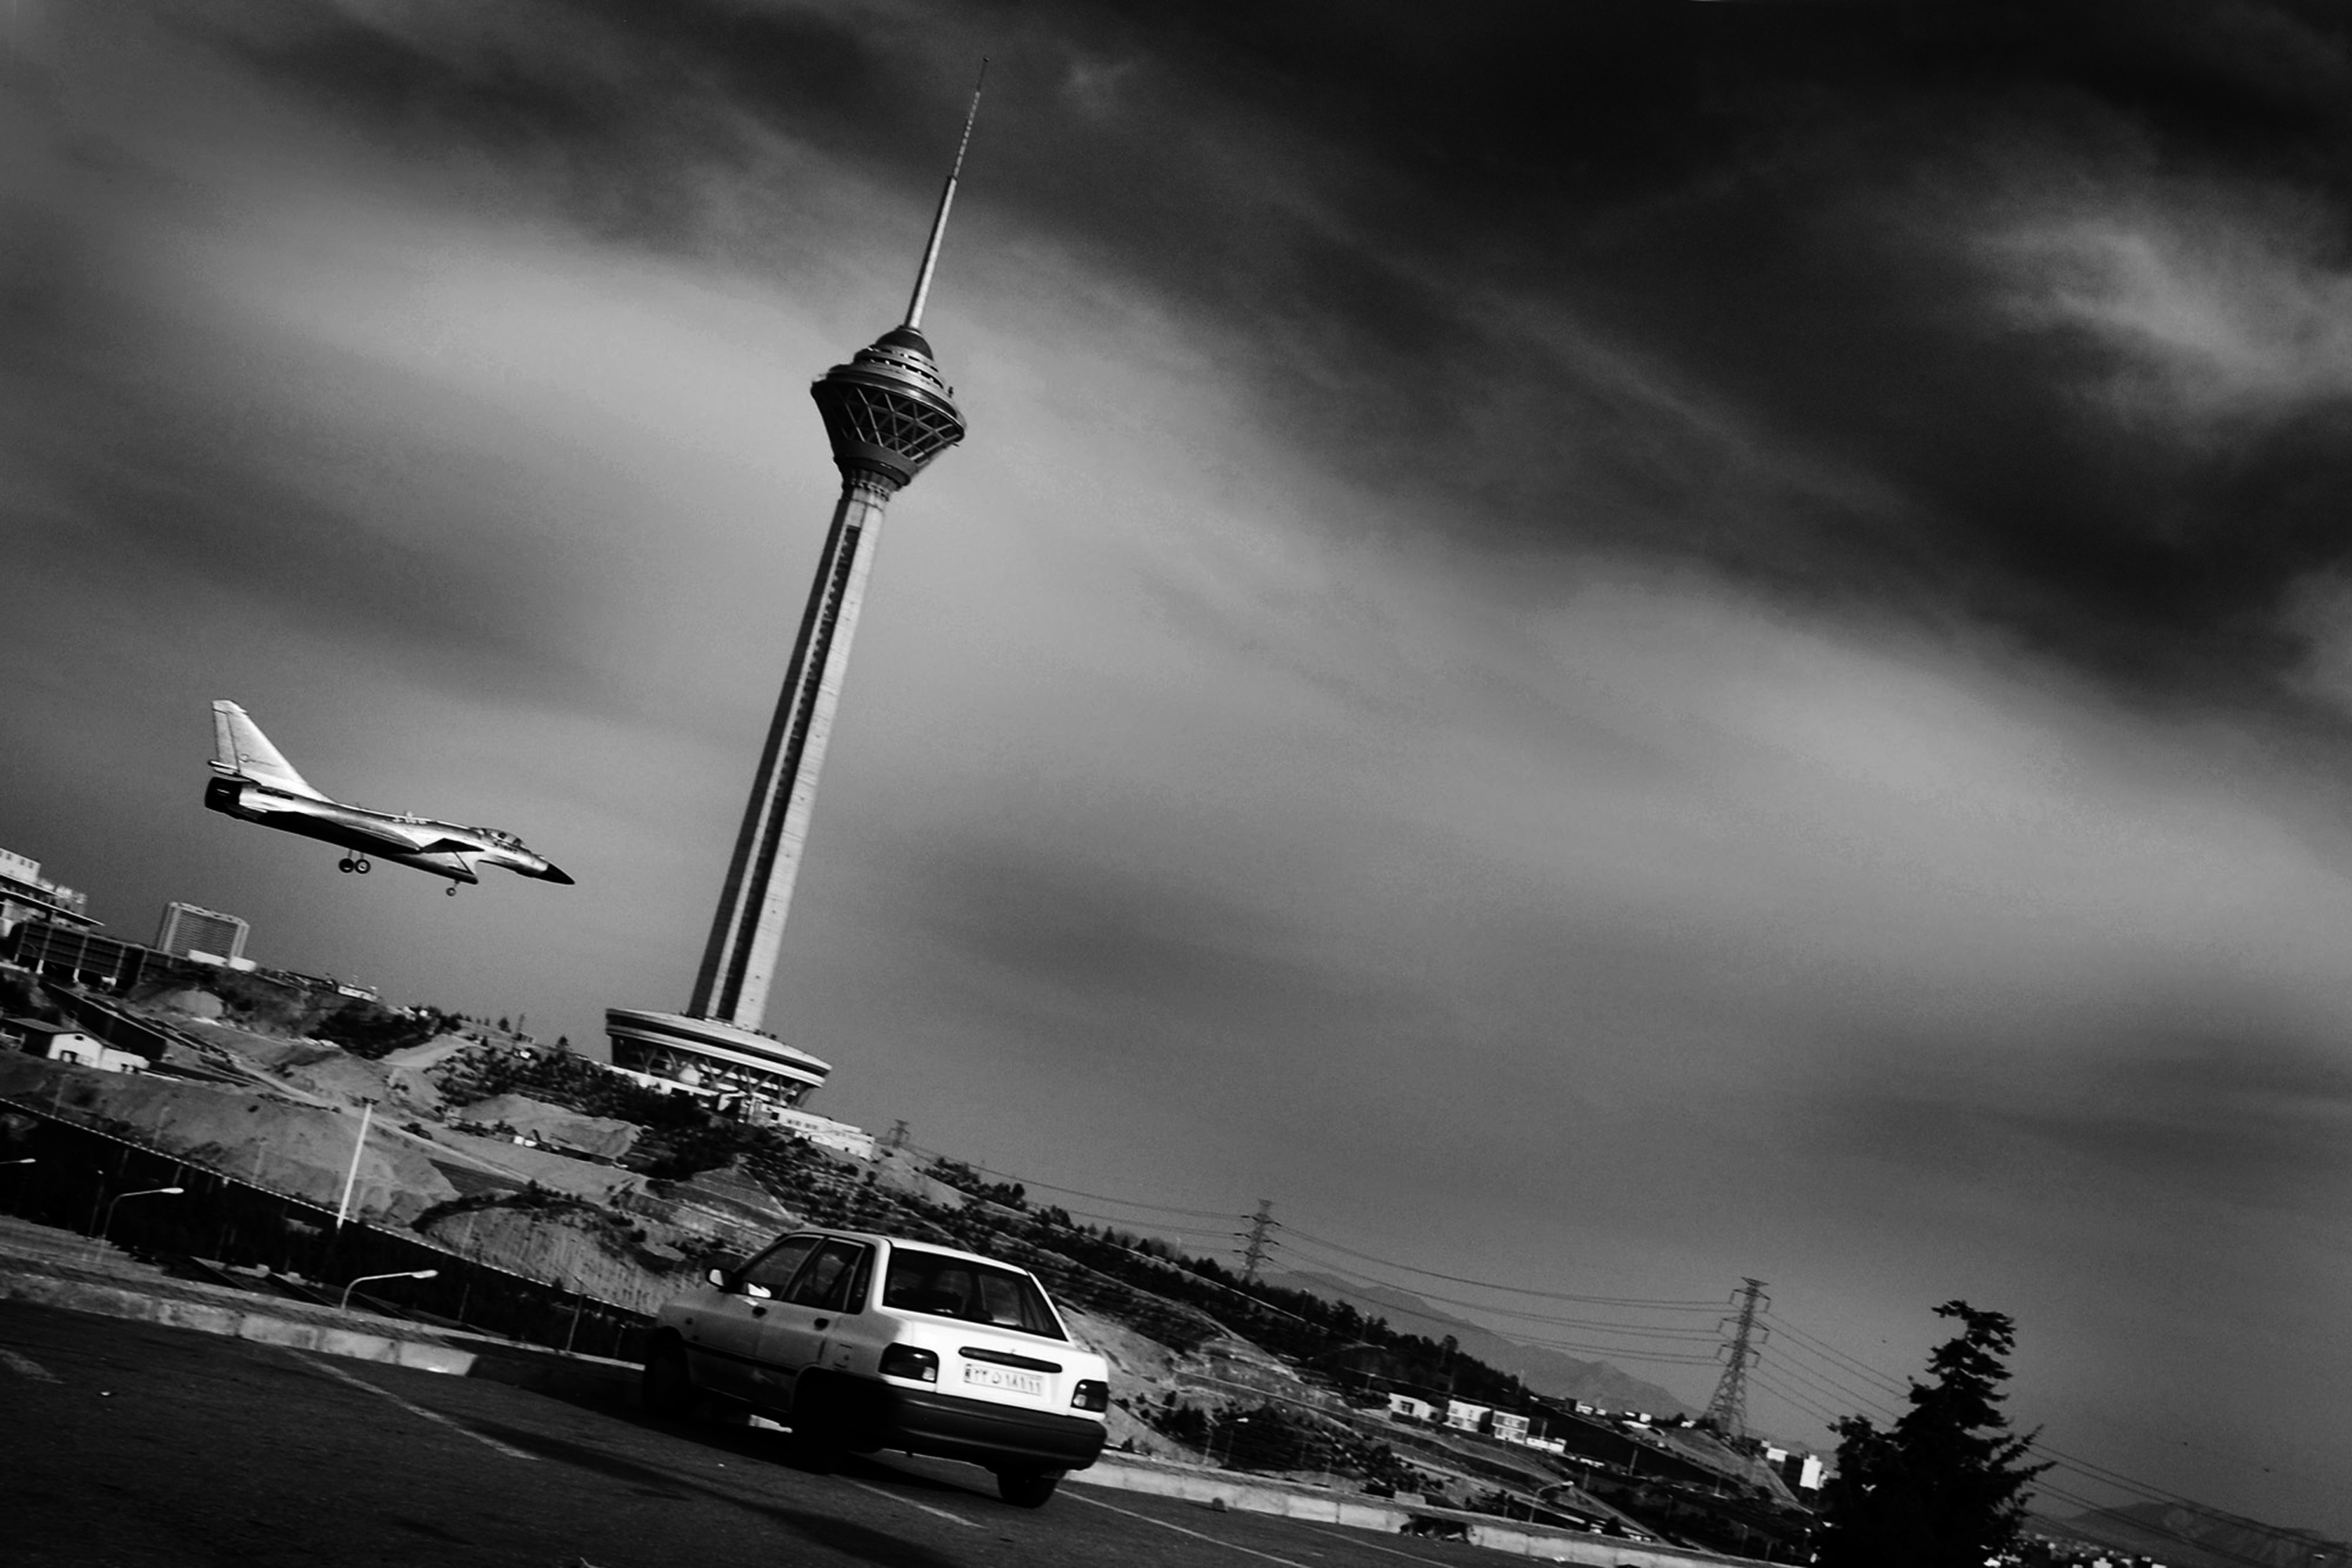 © Hashem Shakeri. (2011) A remote control plane passing by the tallest telecom Tower (Milad) in middle east. while forbidding the use of satellite dishes, the government confiscates all the dishes it can find in people's homes and signals noises in order to disrupt the broadcast of satellite channels and programs. These are done, Iranian officials claim, in order to fight against obscenity; however, the channels that are blocked are mainly those that broadcast political news. After the 2010 presidential elections, noise transmission increased greatly. Inside and outside Iran, people have protested widely - albeit to no avail - to noise transmission, specifically since it is believed to be harmful to health. Infertility and damage to the nervous system are among the most important conditions caused by noise transmission. Milad tower in Tehran (the tallest tower of Iran) is used both for telecommunication and the signalling of noise. Tehran, Iran